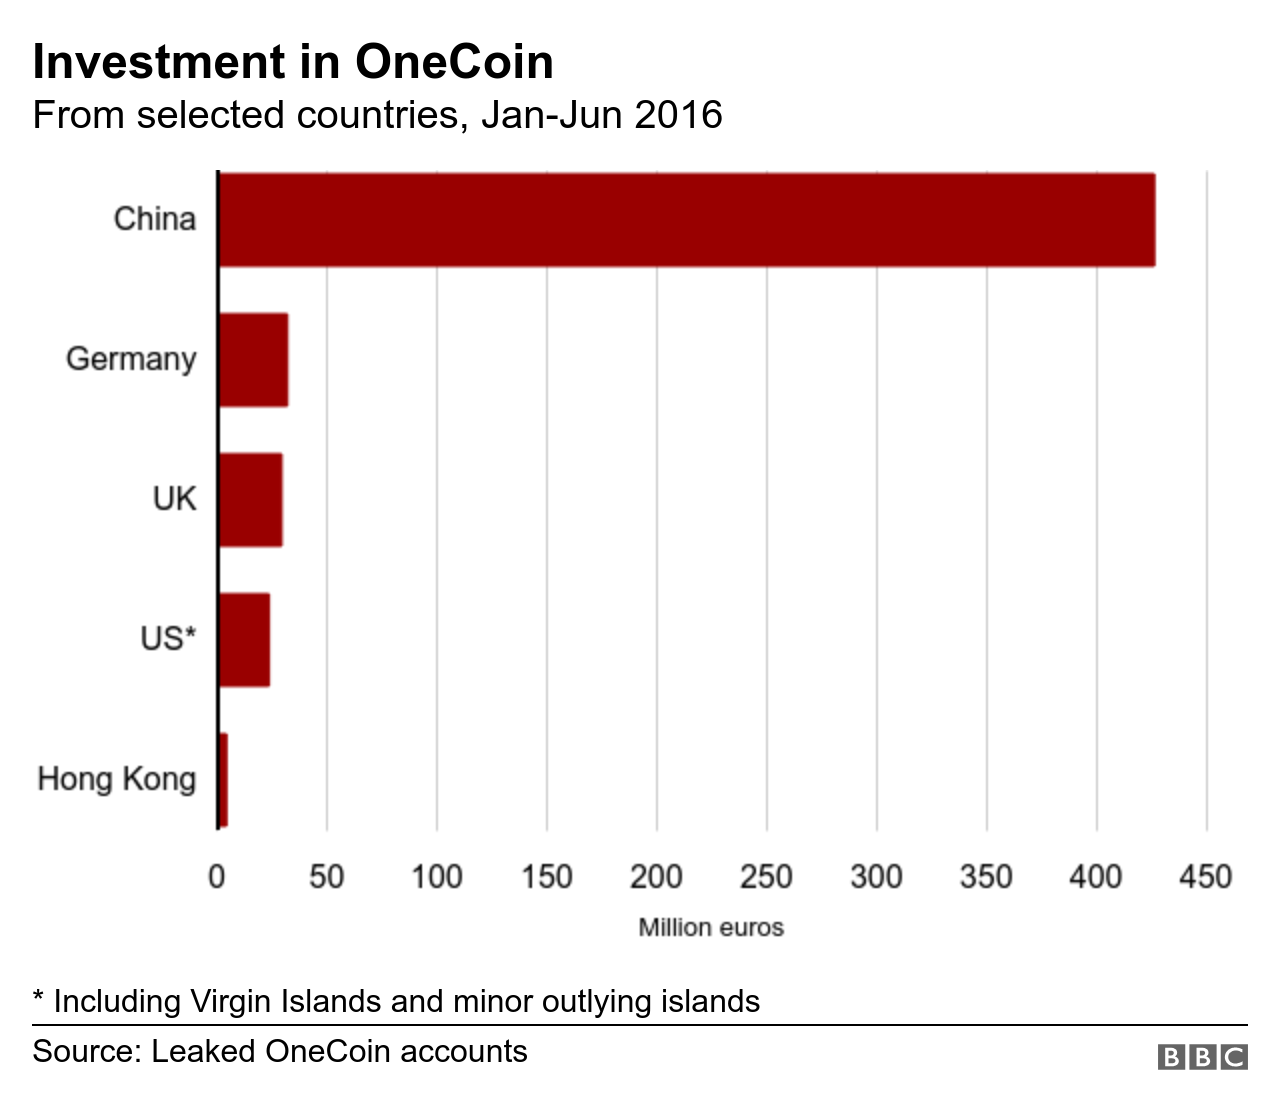 Graphic showing investment in OneCoin over time